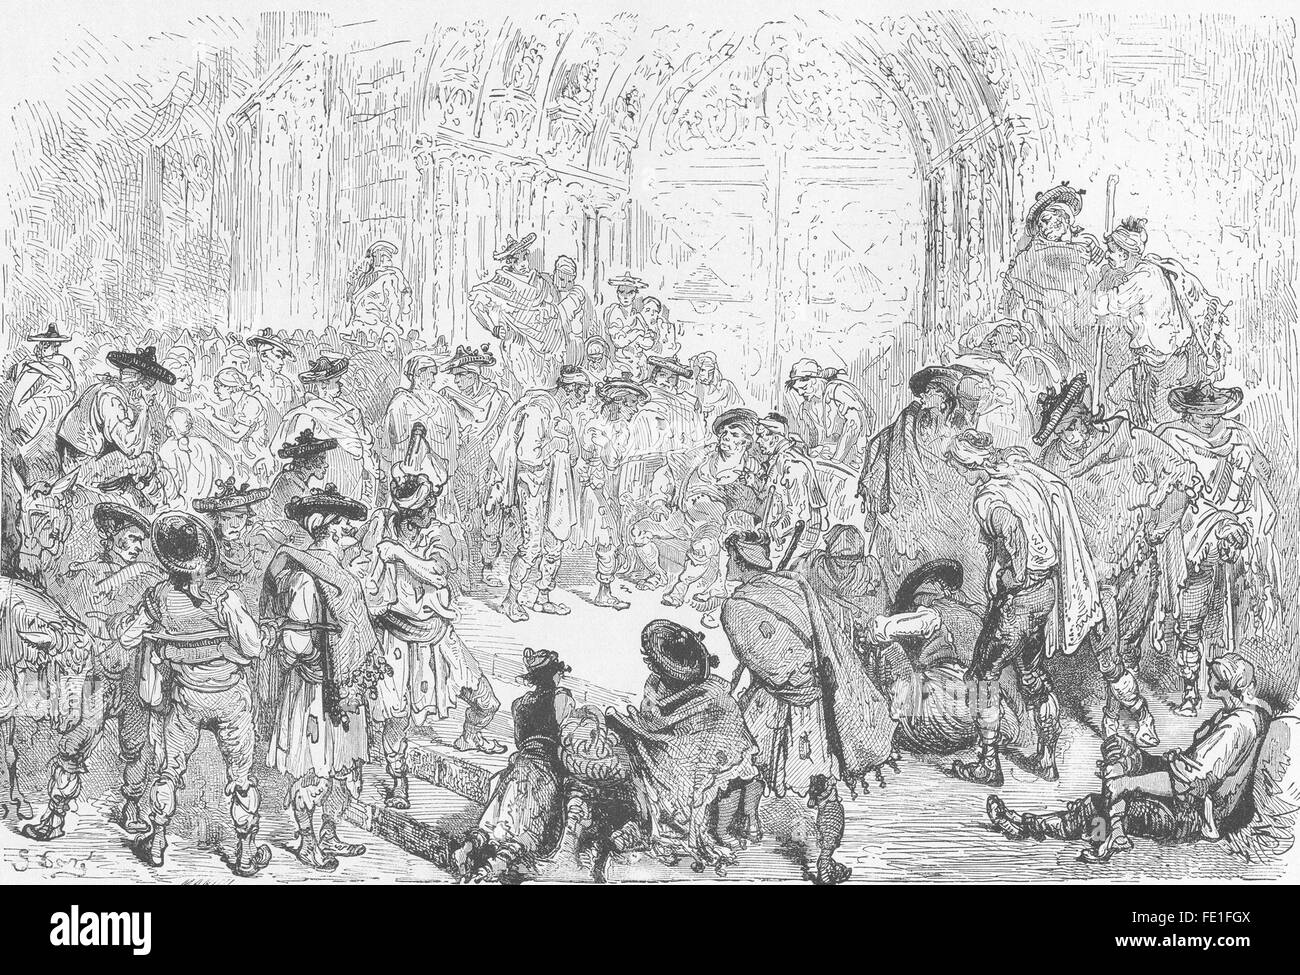 SPAIN: Tribunal of the waters, Valencia, antique print 1881 Stock Photo